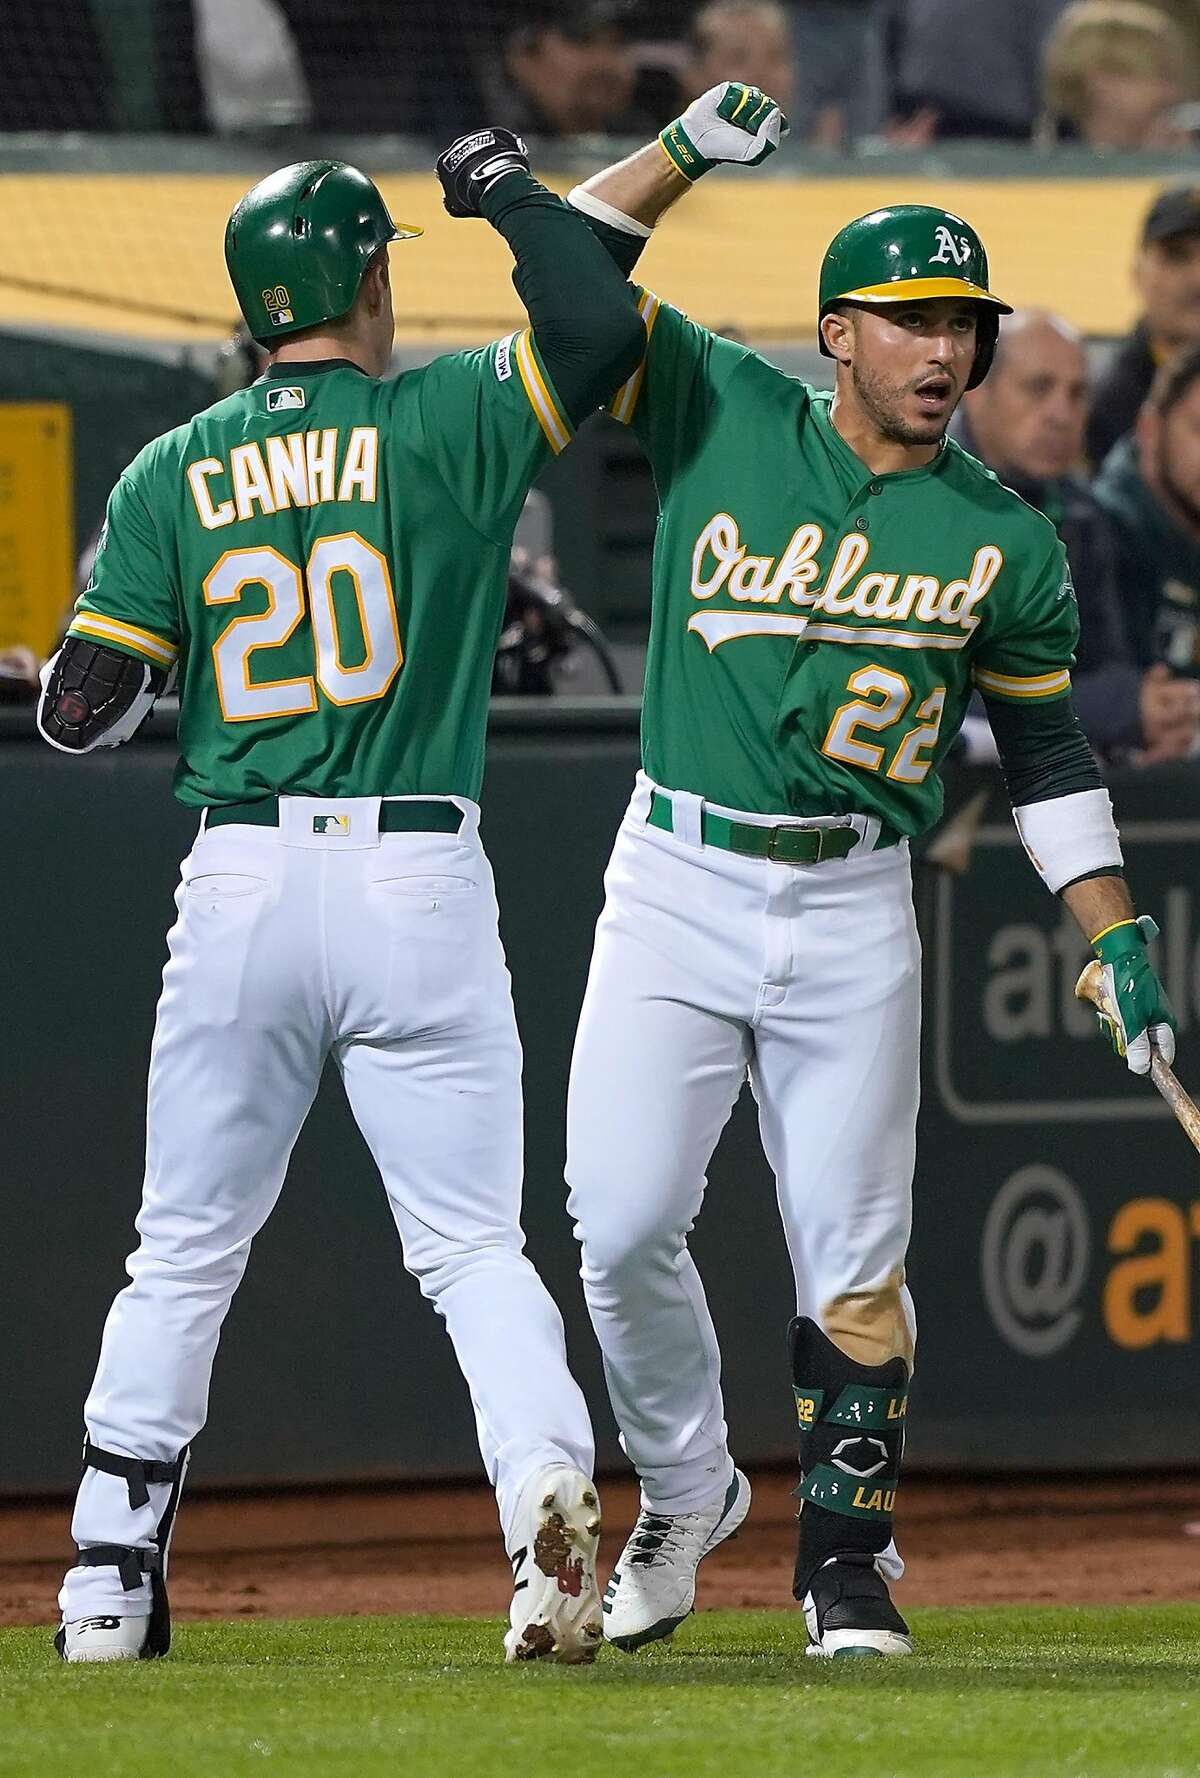 OAKLAND, CA - MAY 24: Mark Canha #20 of the Oakland Athletics is congratulated by Ramon Laureano #22 after Canha hit a solo home run against the Seattle Mariners in the bottom of the fourth inning of a Major League Baseball game at Oakland-Alameda County Coliseum on May 24, 2019 in Oakland, California. (Photo by Thearon W. Henderson/Getty Images)